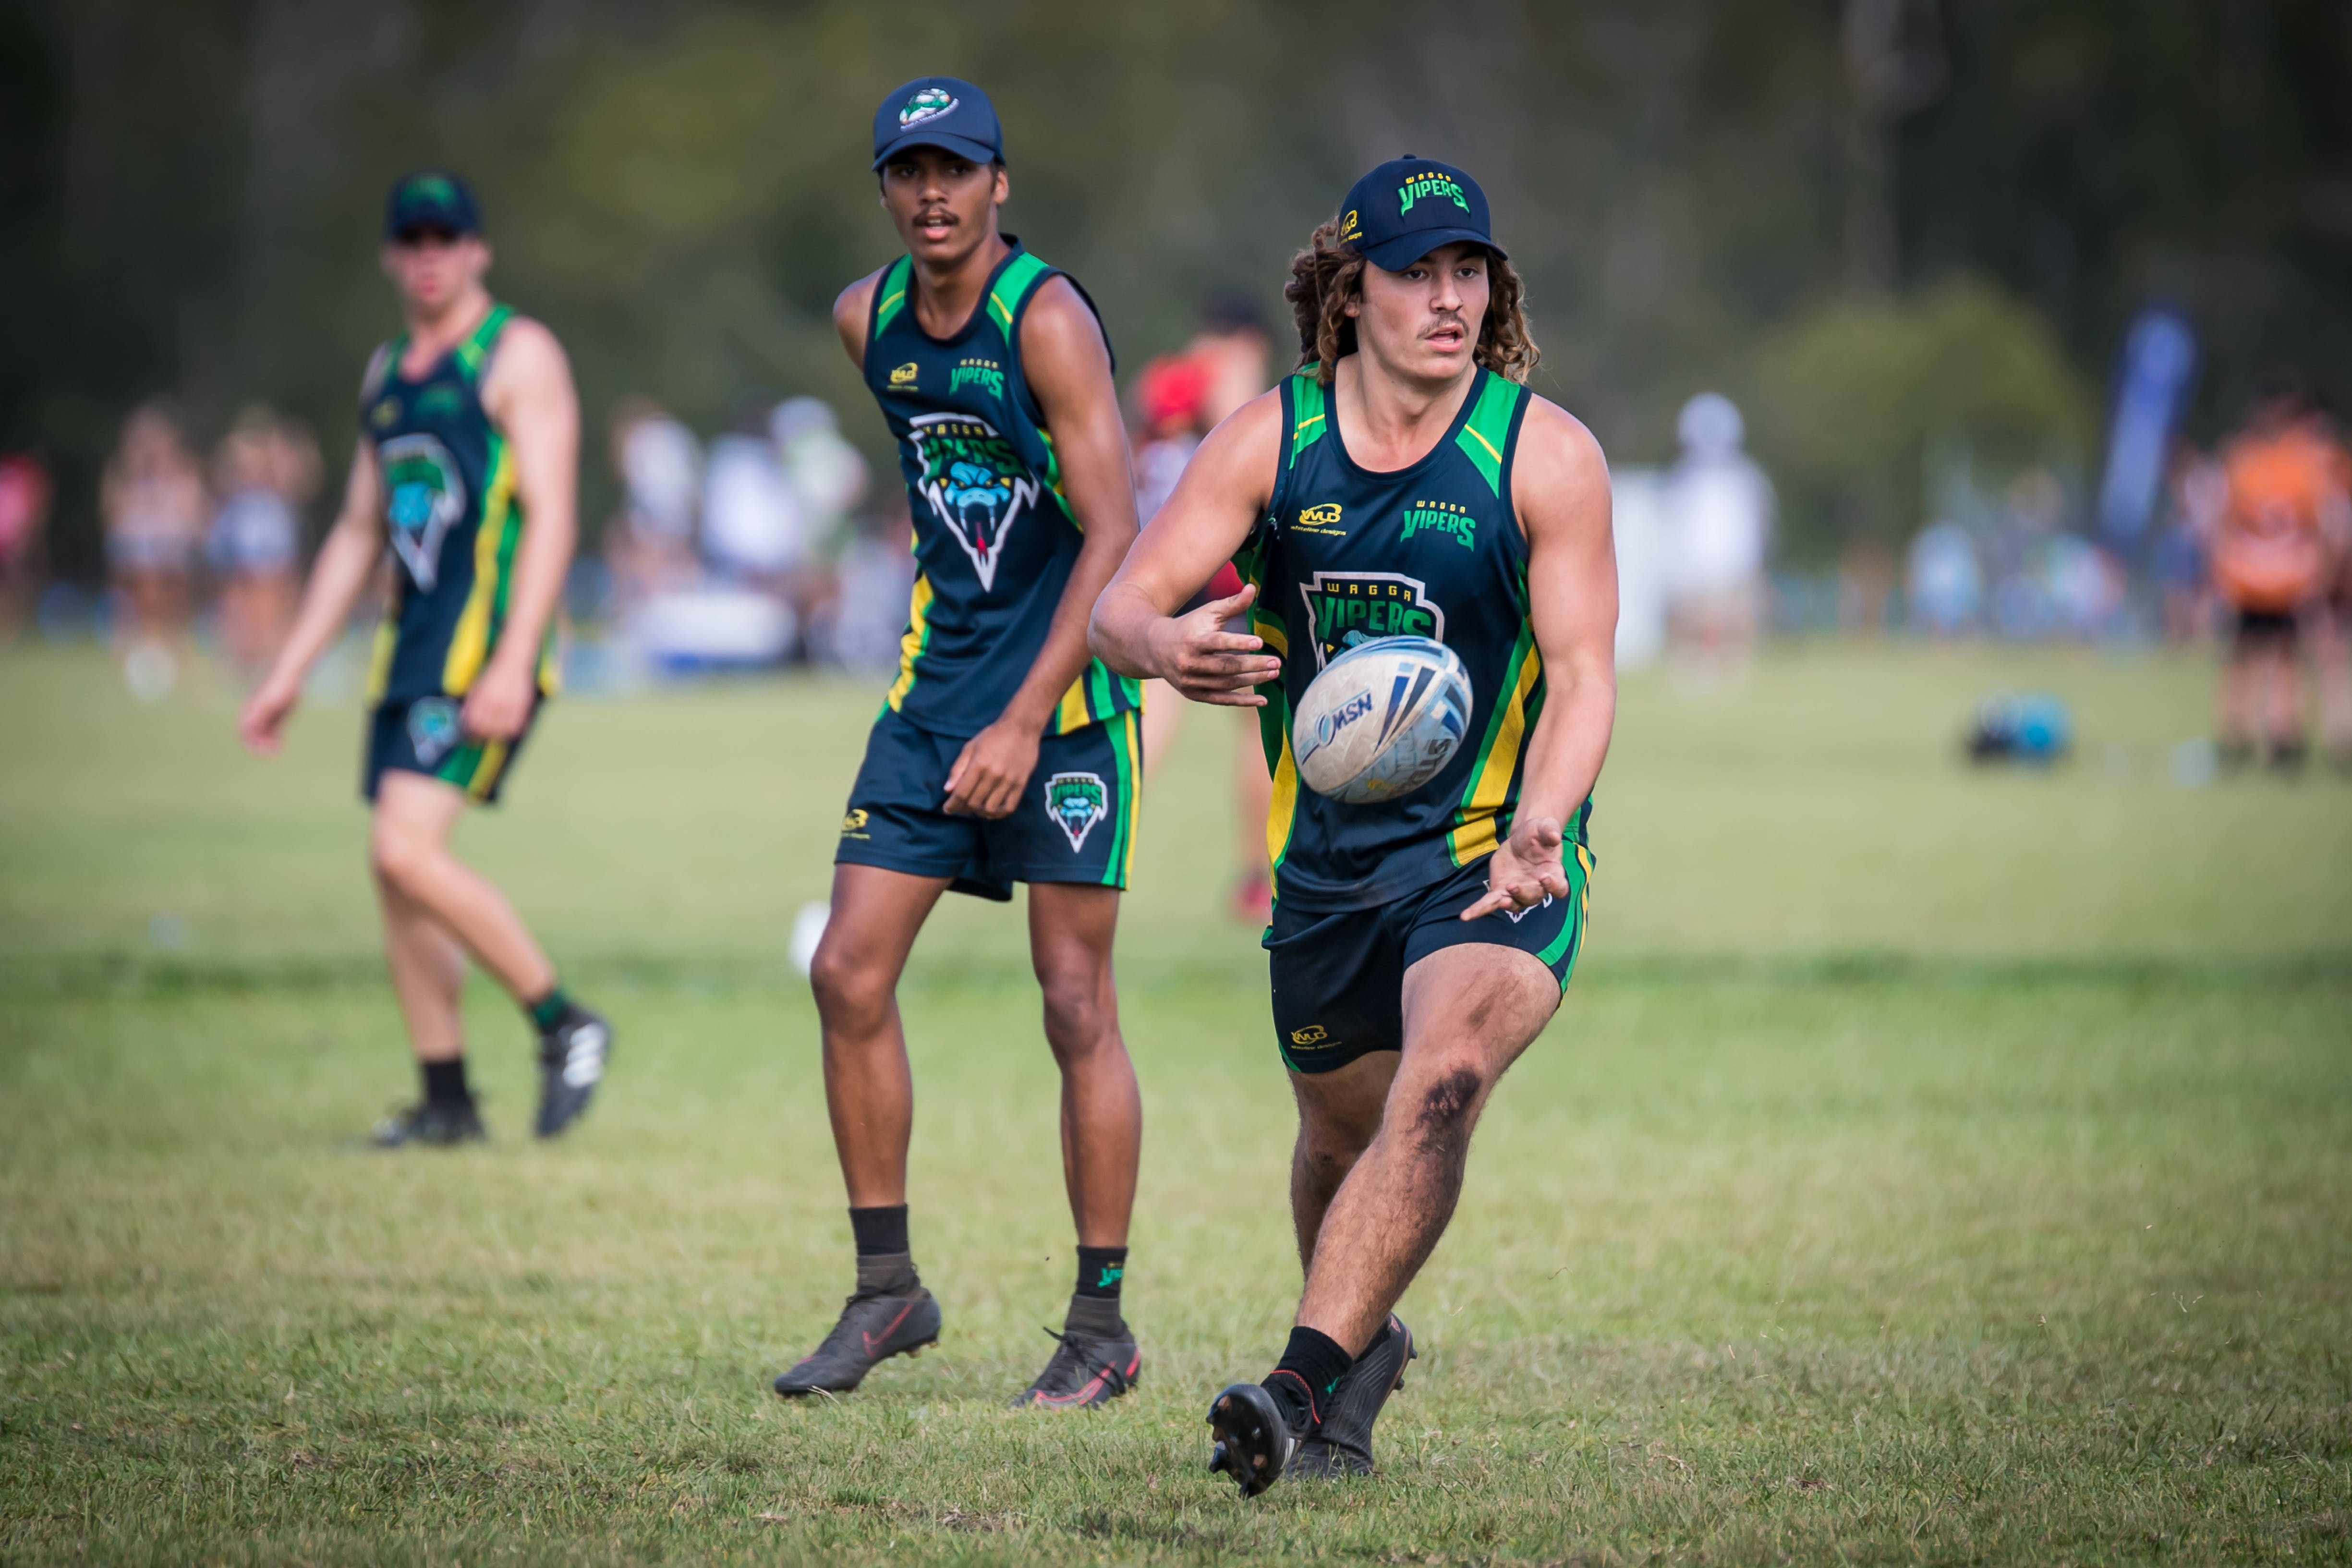 NSW Touch Junior State Cup Southern Conference - Accommodation Resorts